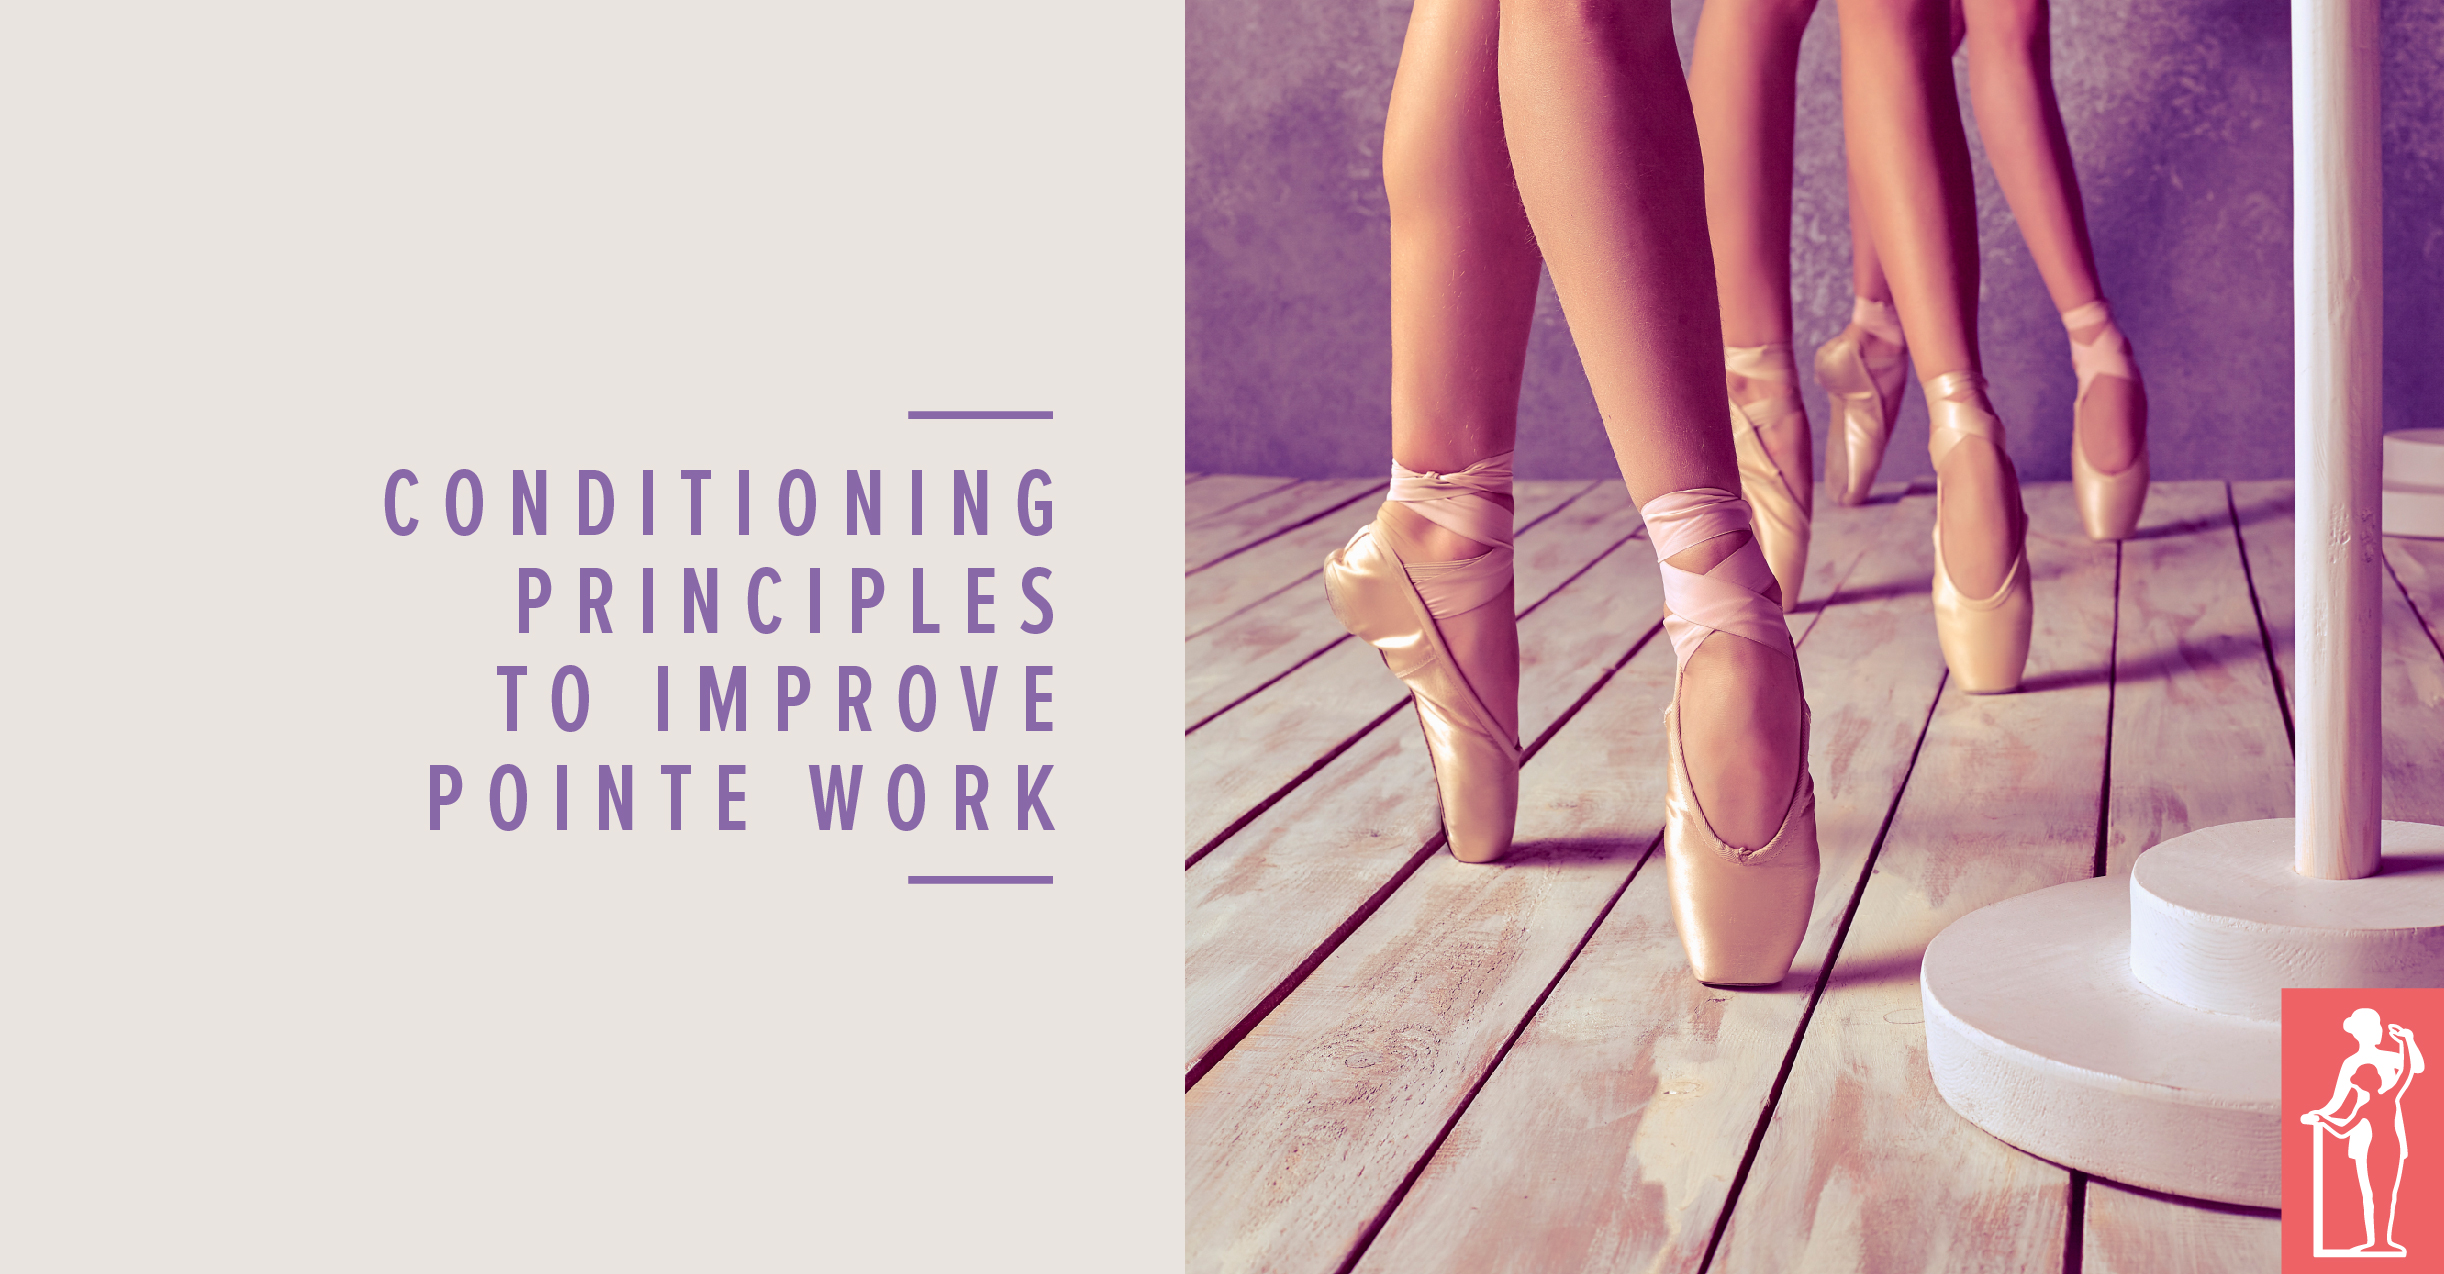 Conditioning for Pointe